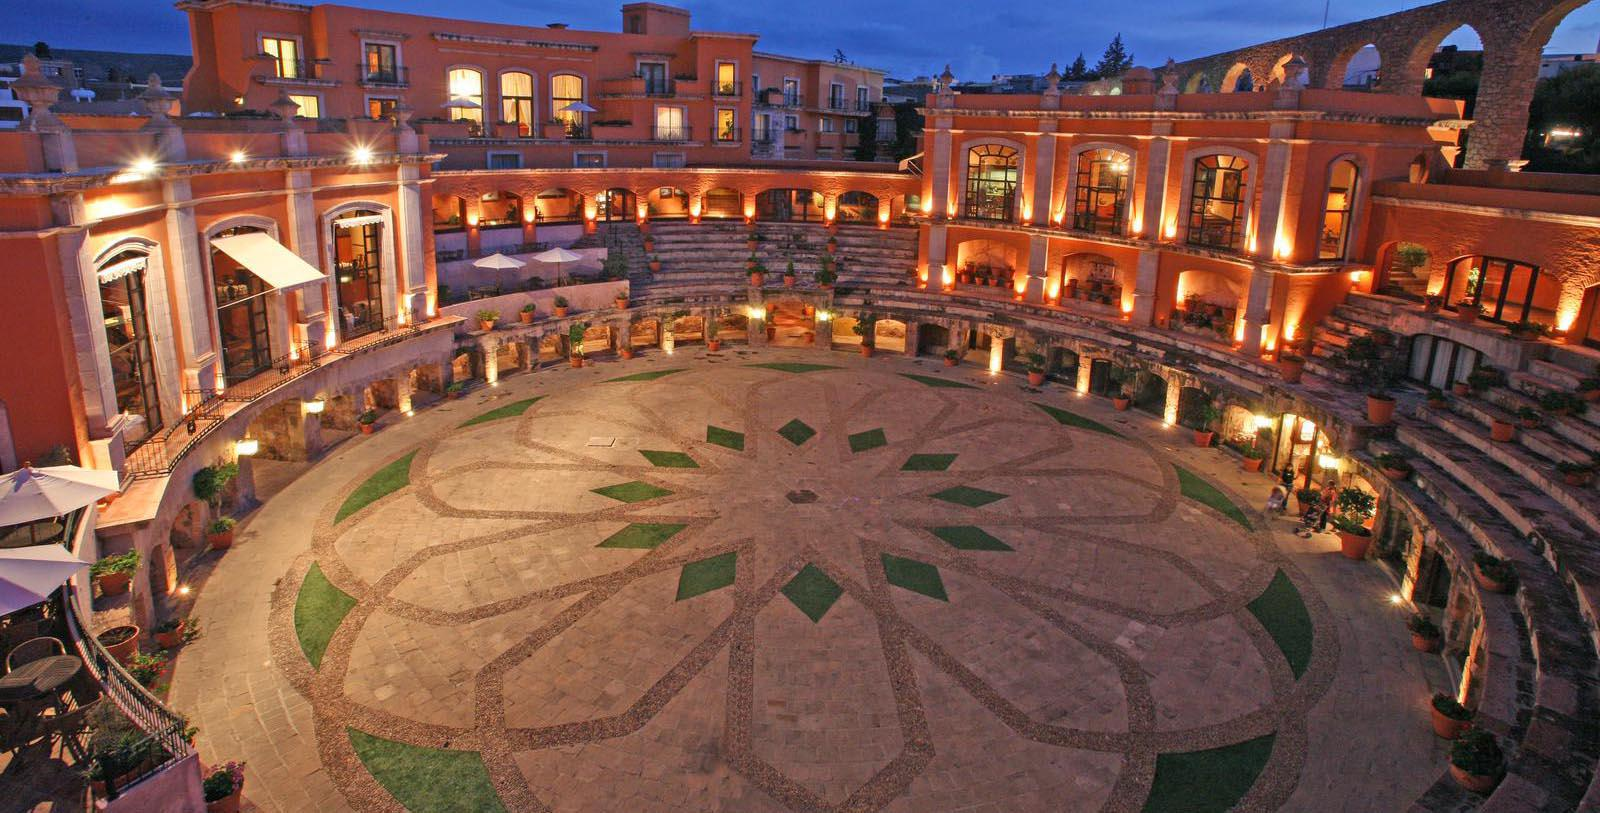 Image of Courtyard Quinta Real Zacatecas, 1866, Member of Historic Hotels Worldwide, in Zacatecas, Mexico, Special Offers, Discounted Rates, Families, Romantic Escape, Honeymoons, Anniversaries, Reunions